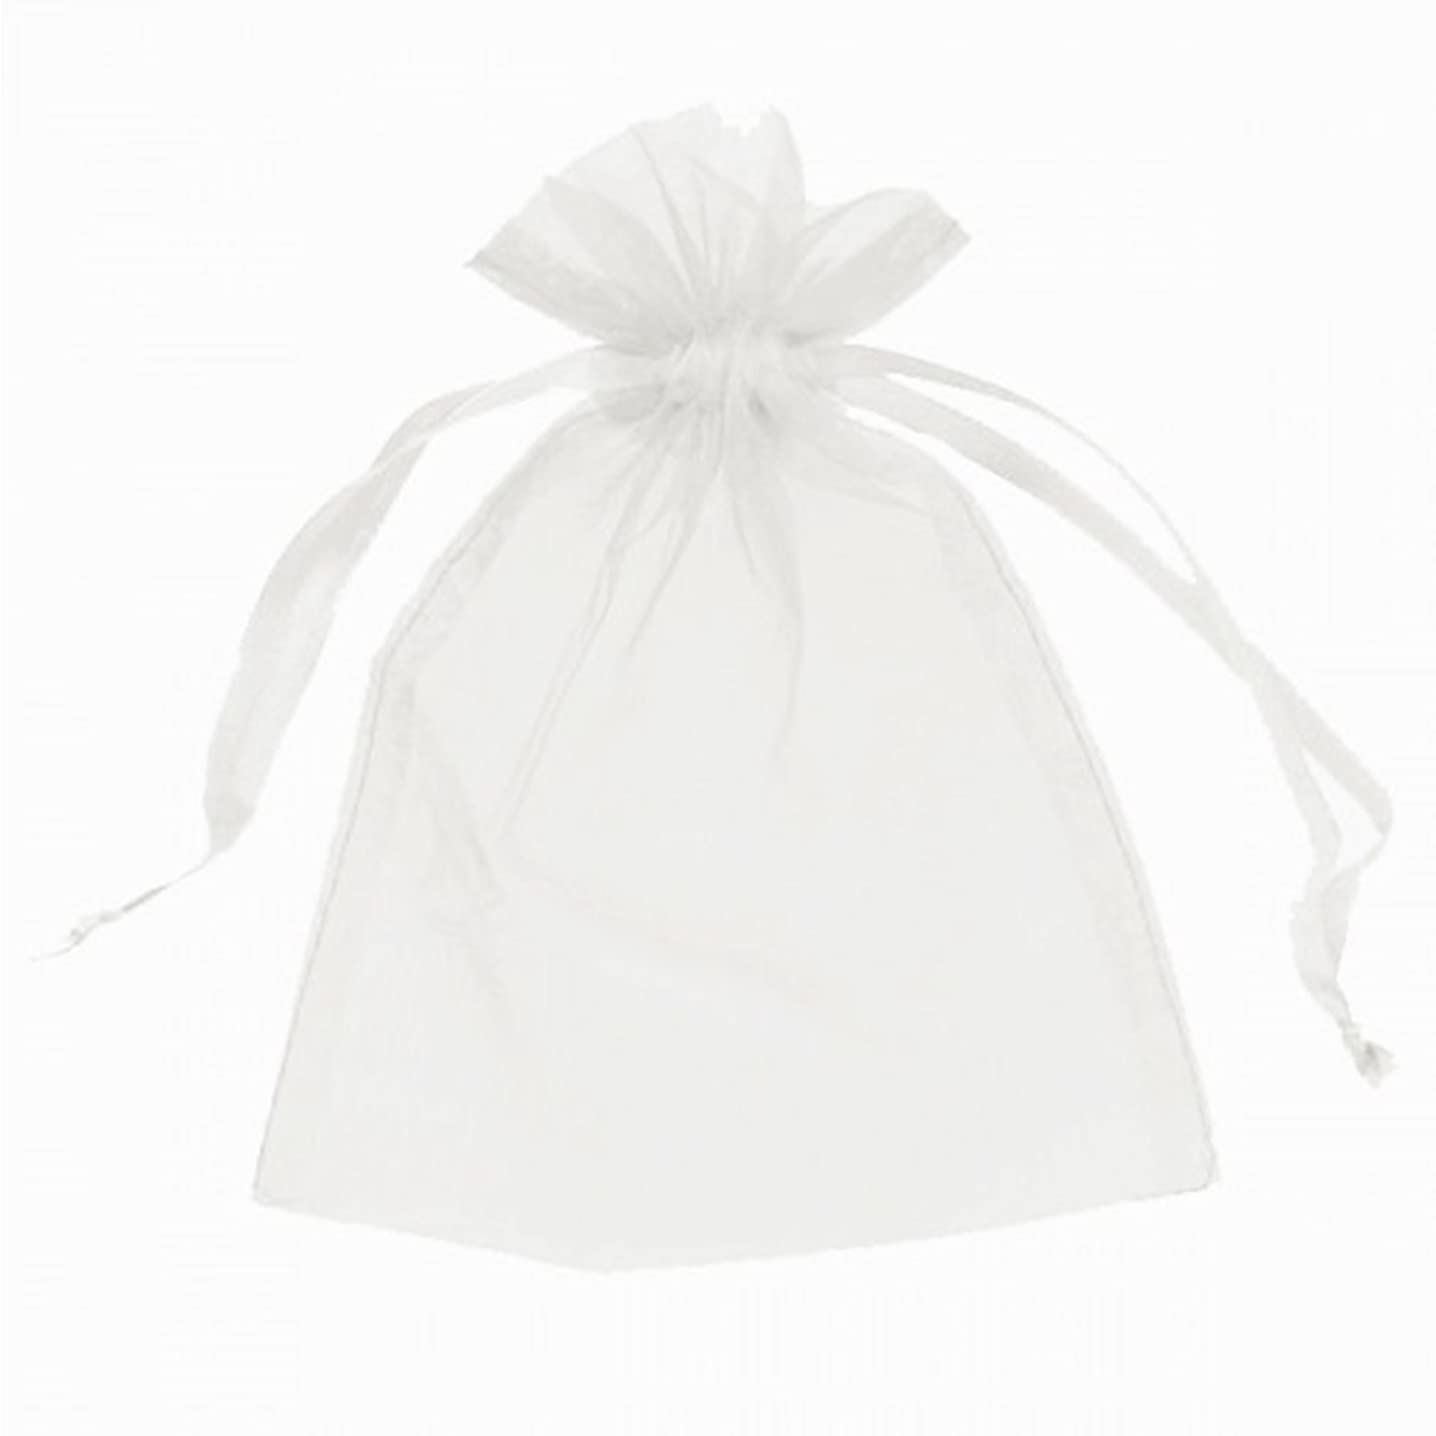 100 pcs Sheer Organza Drawstring Pouches Gift Bags White Color 3x4 Inches